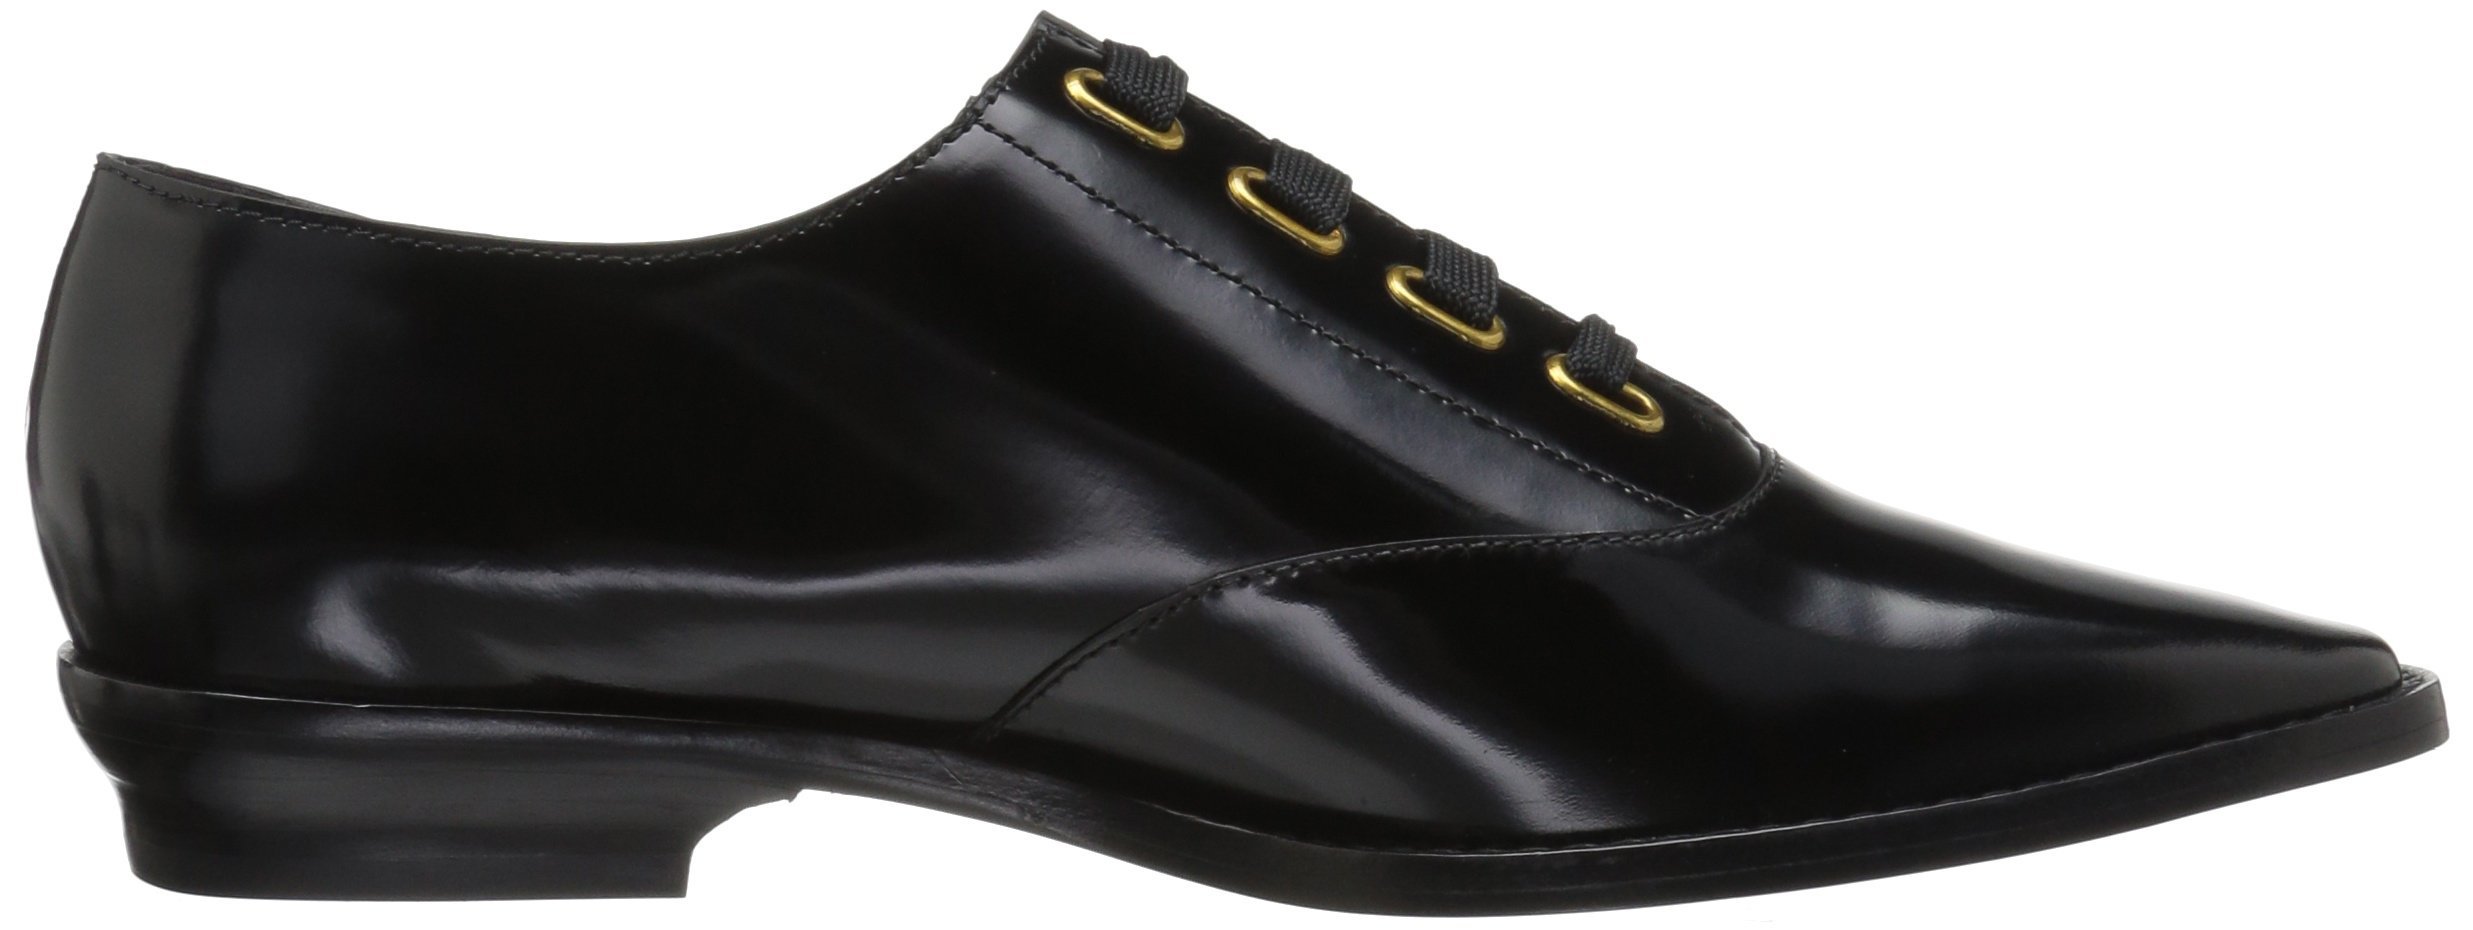 Marc Jacobs Women's Brittany Lace up Oxford, Black, 36 M EU (6 US) by Marc Jacobs (Image #7)